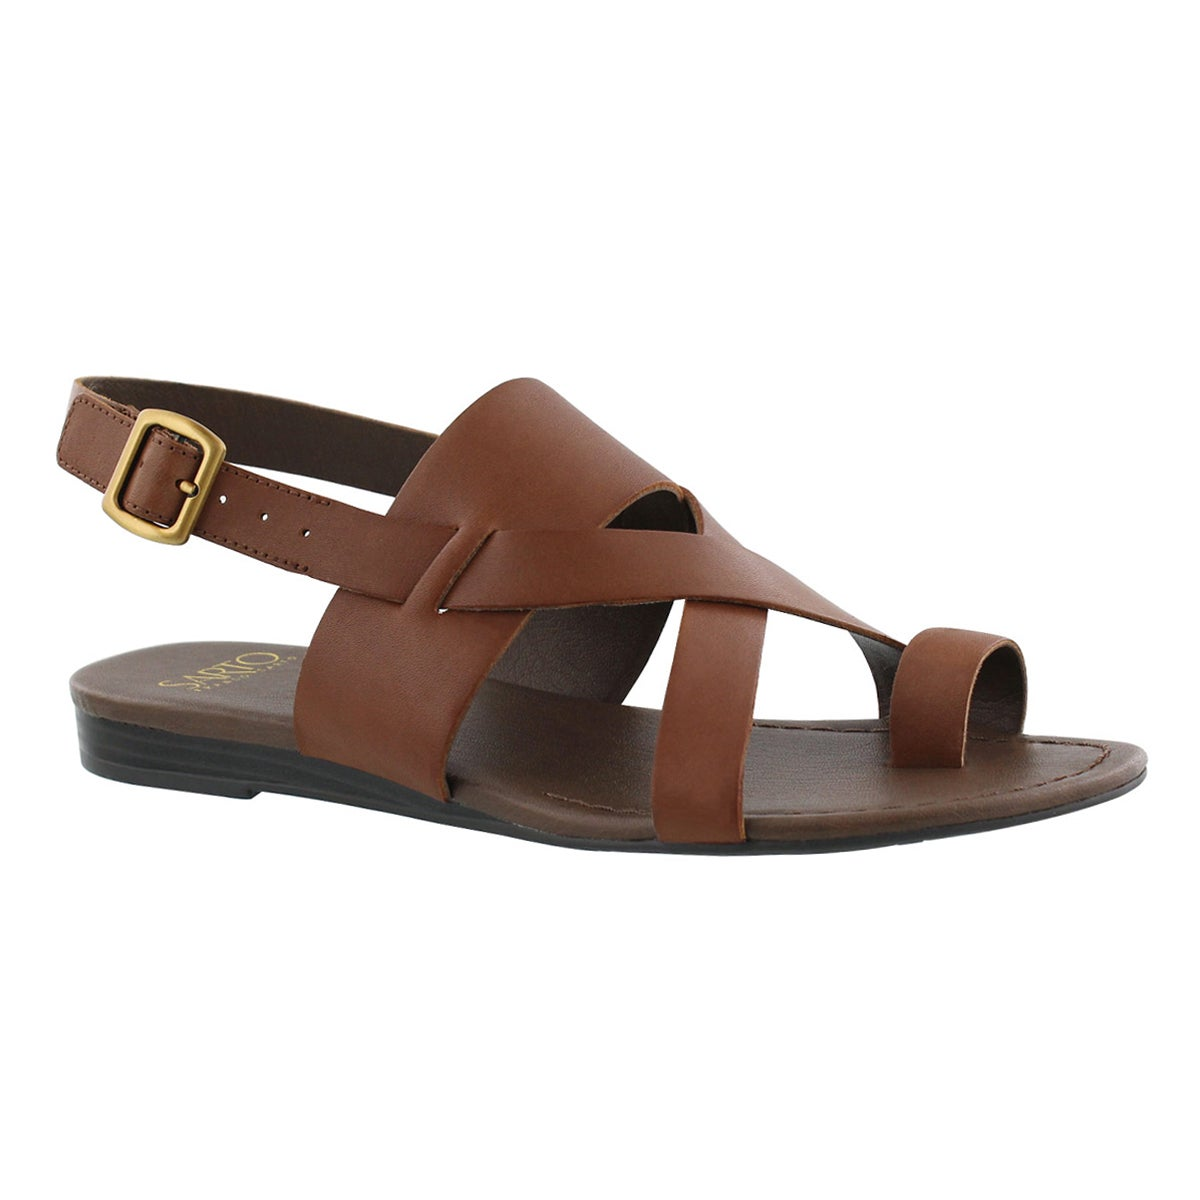 Women's GIA choc brown toe wrap casual sandals